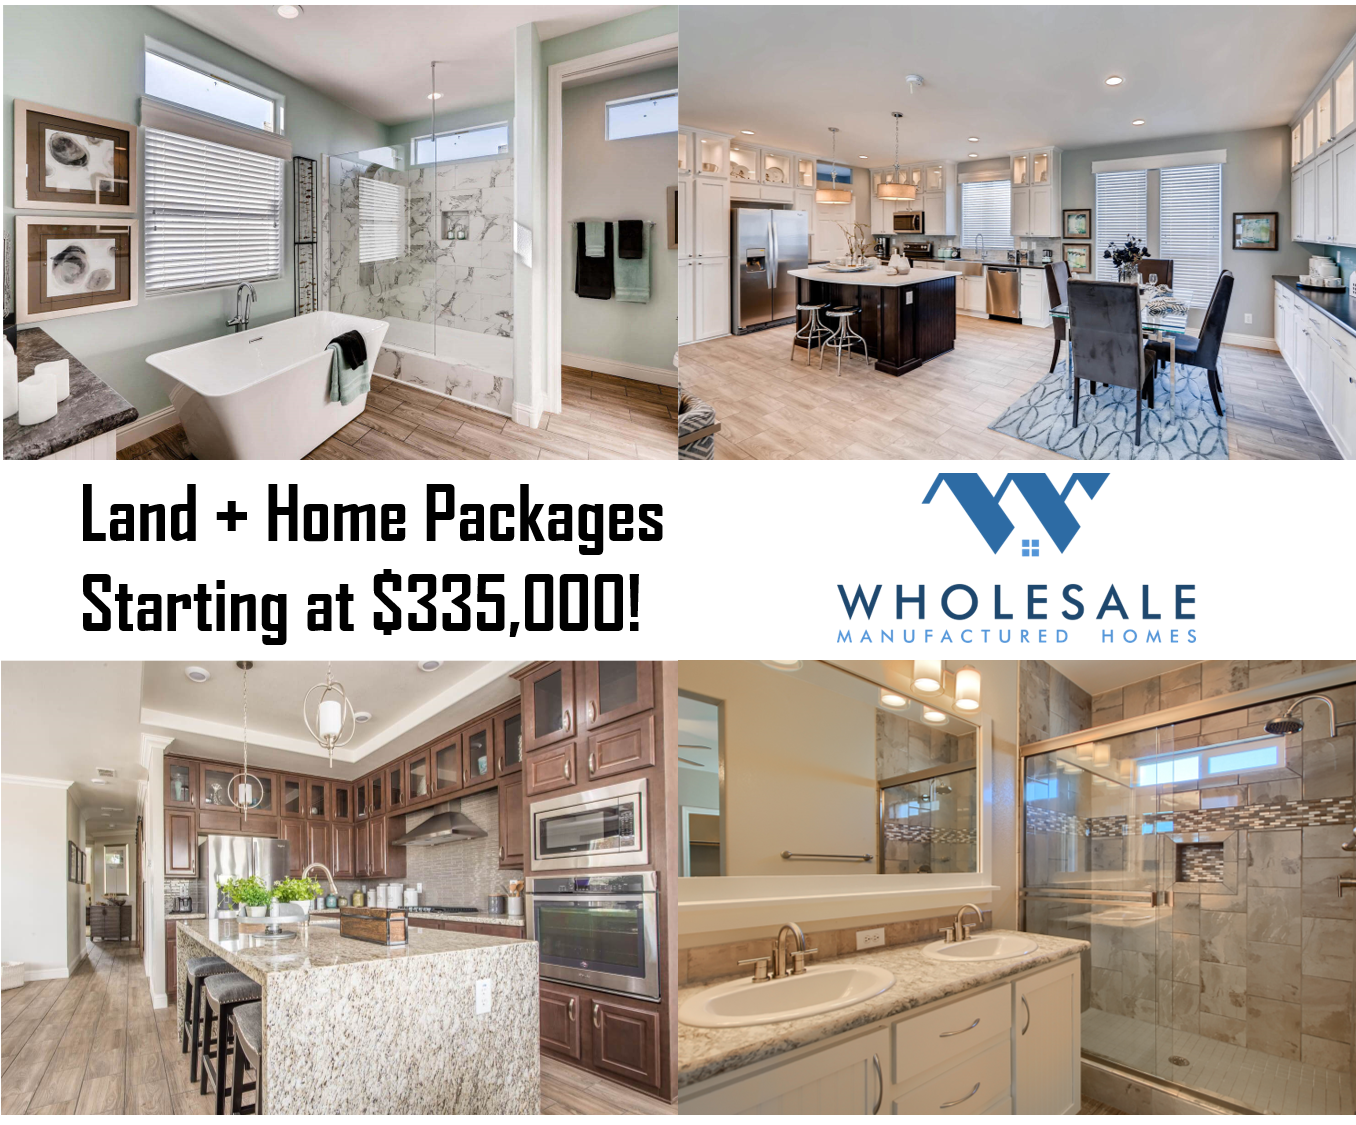 Land + Home Package, Move-In Ready This Winter!